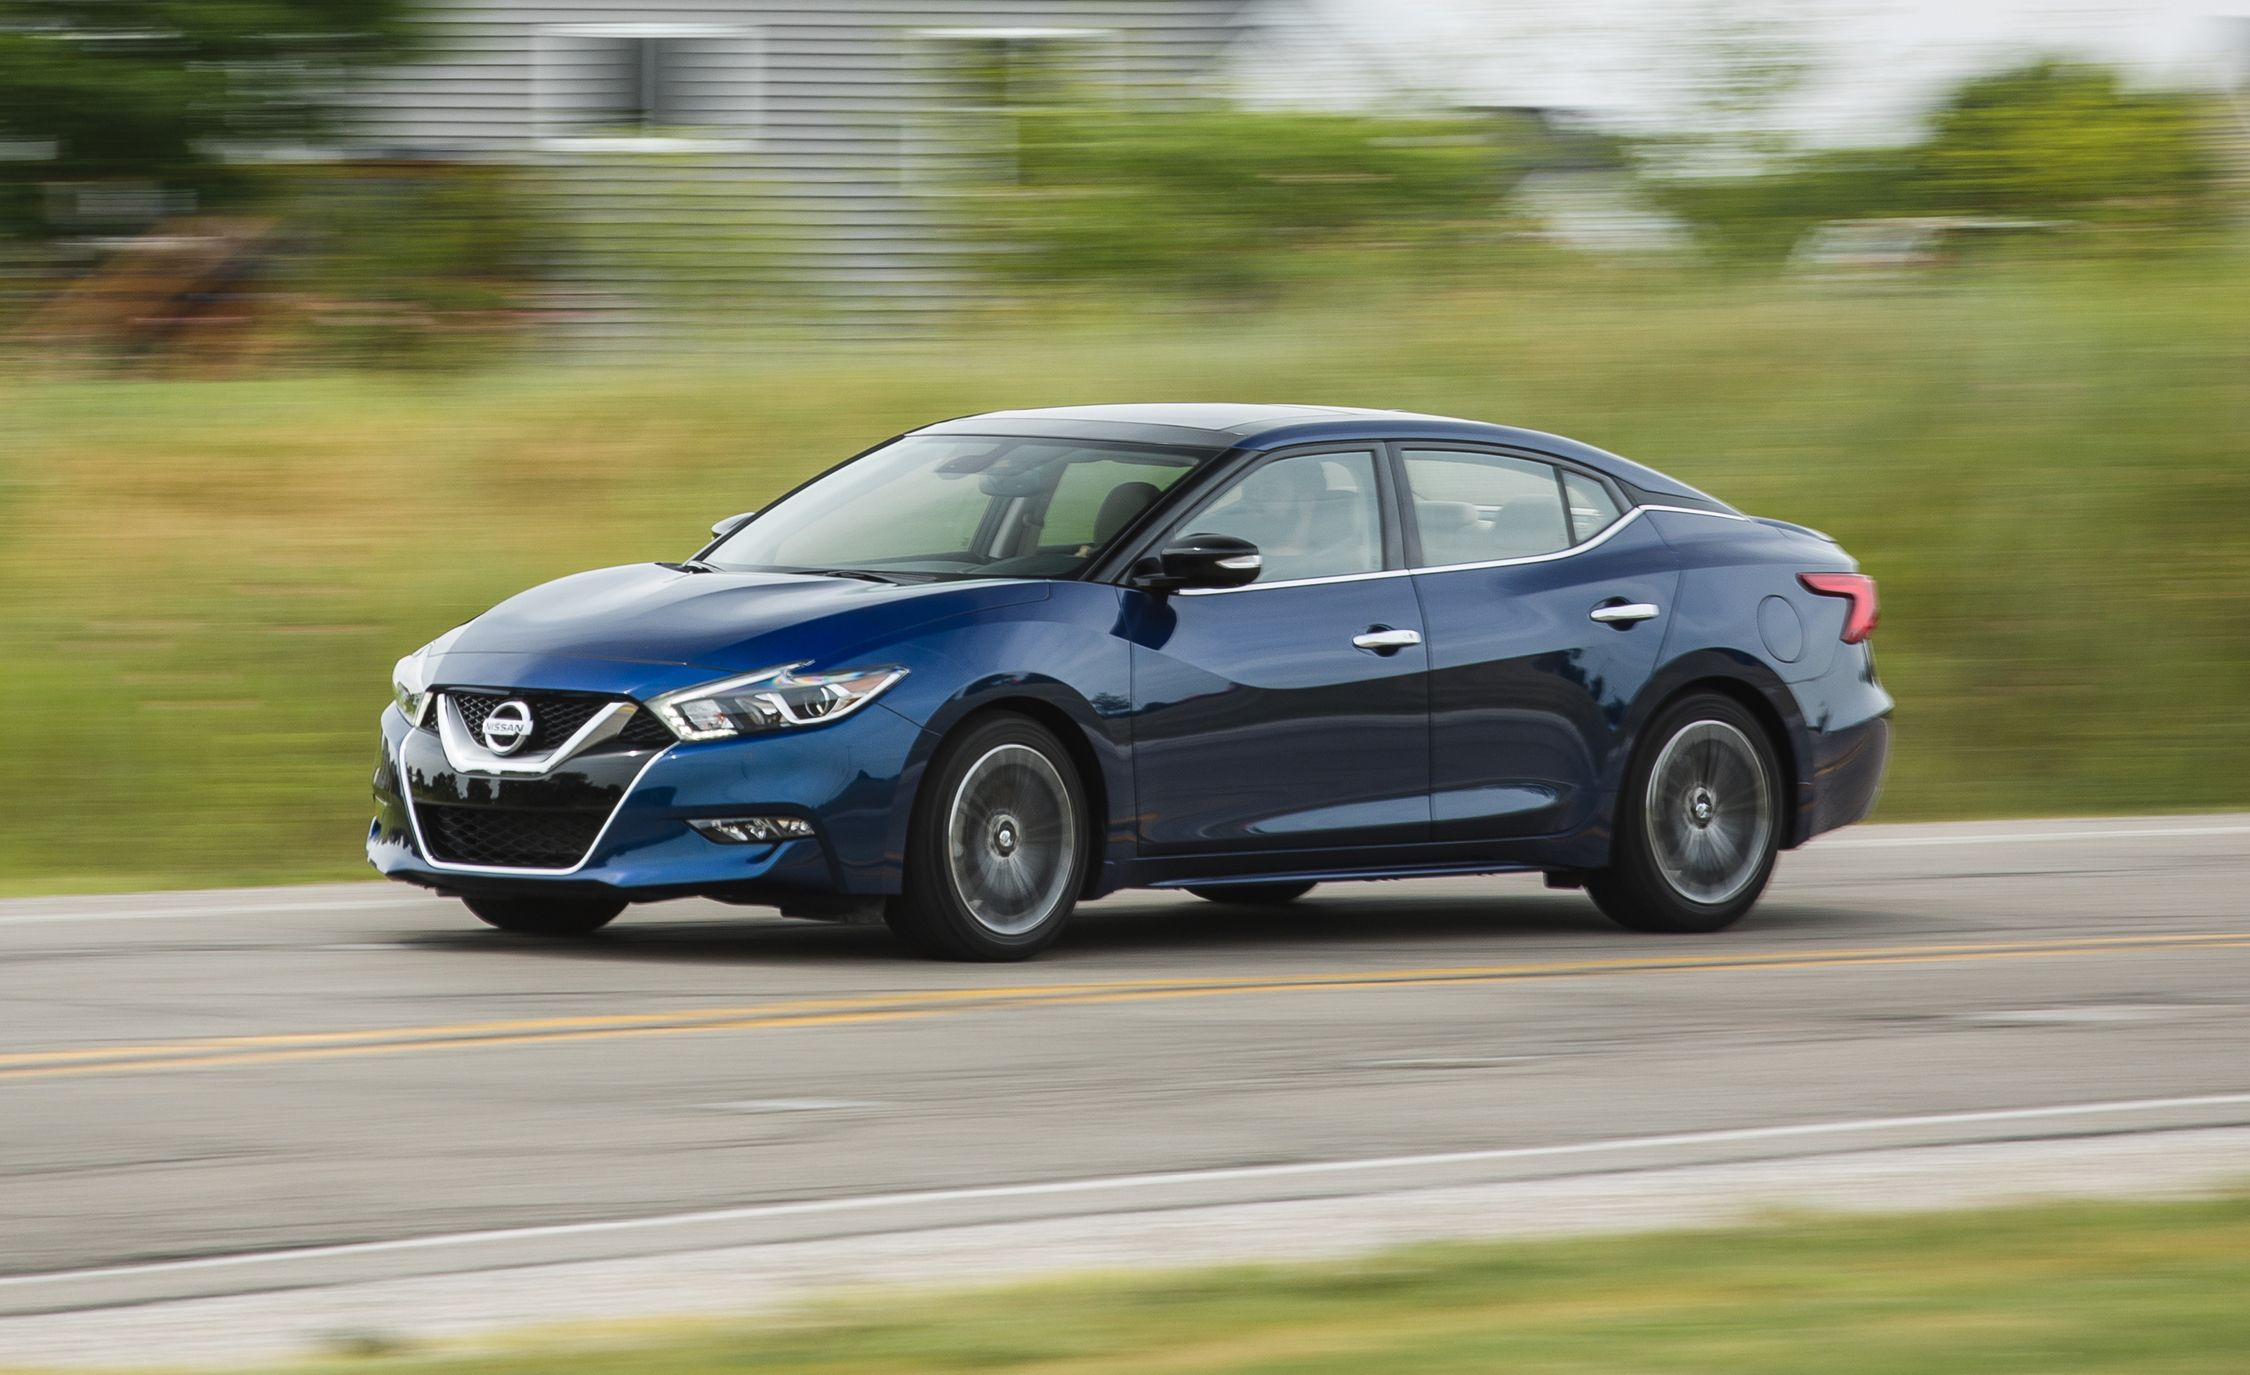 2016 Nissan Maxima SR Instrumented Test Review